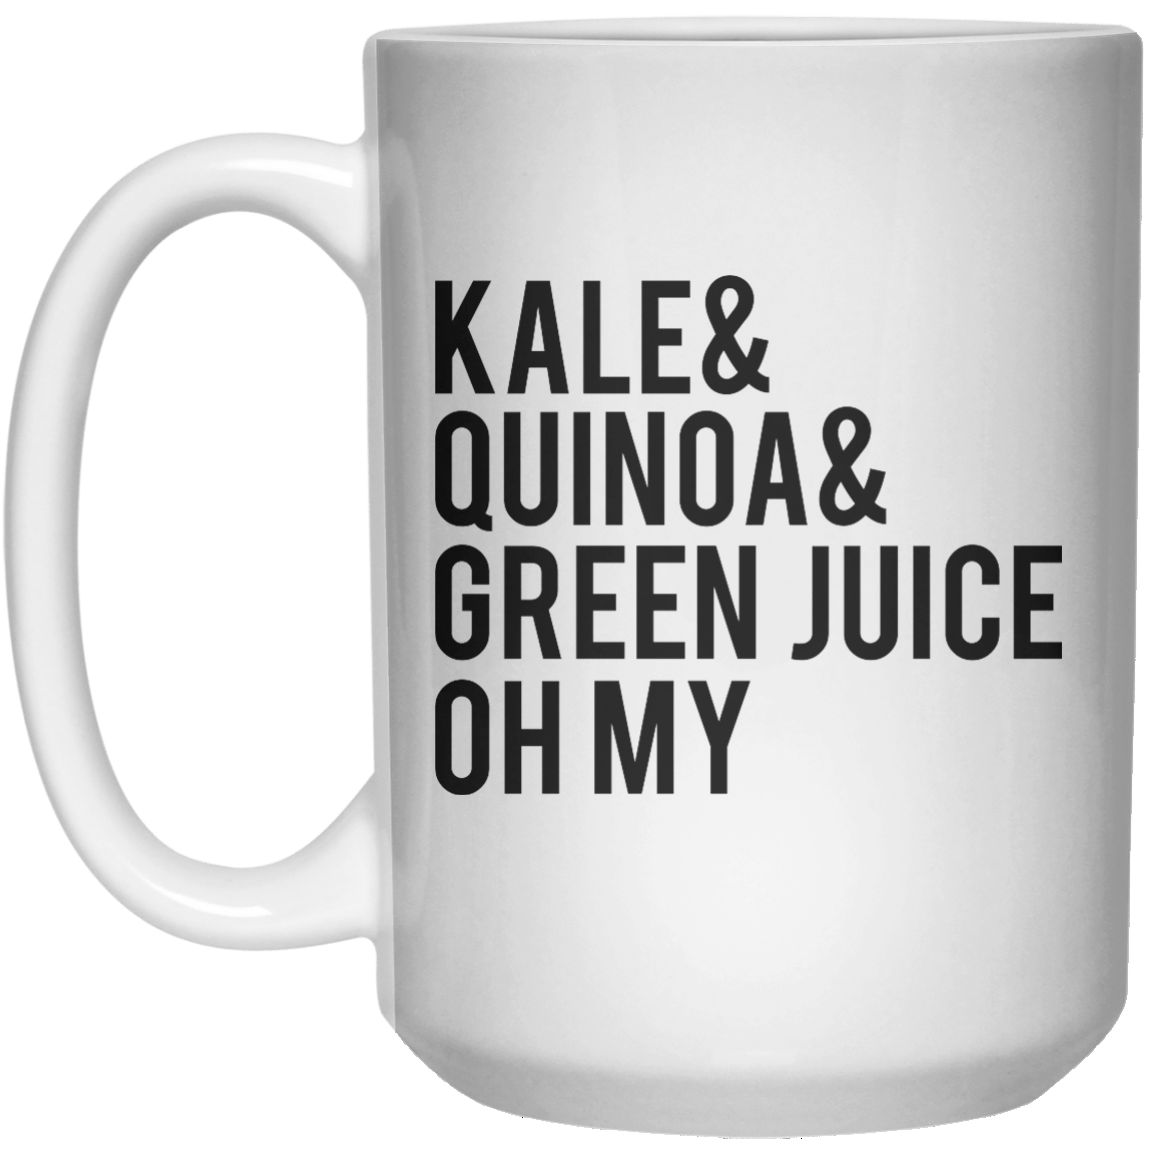 kale& quinoa& green juice oh my MUG  Mug - 15oz - Shirtoopia